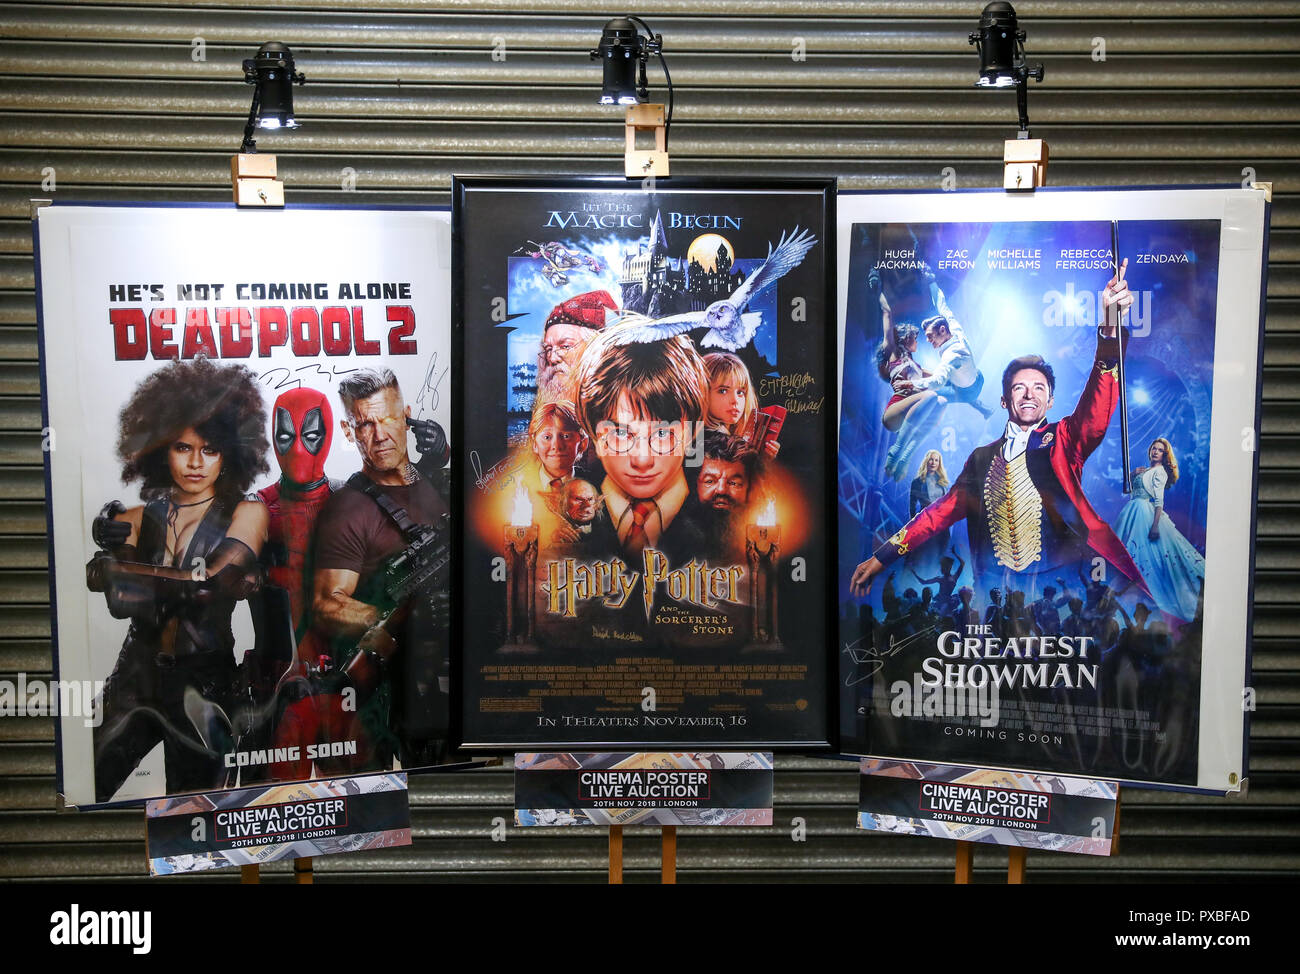 Embargoed To 0001 Monday October 22 Movie Posters For Deadpool 2 Signed By Ryan Reynolds And